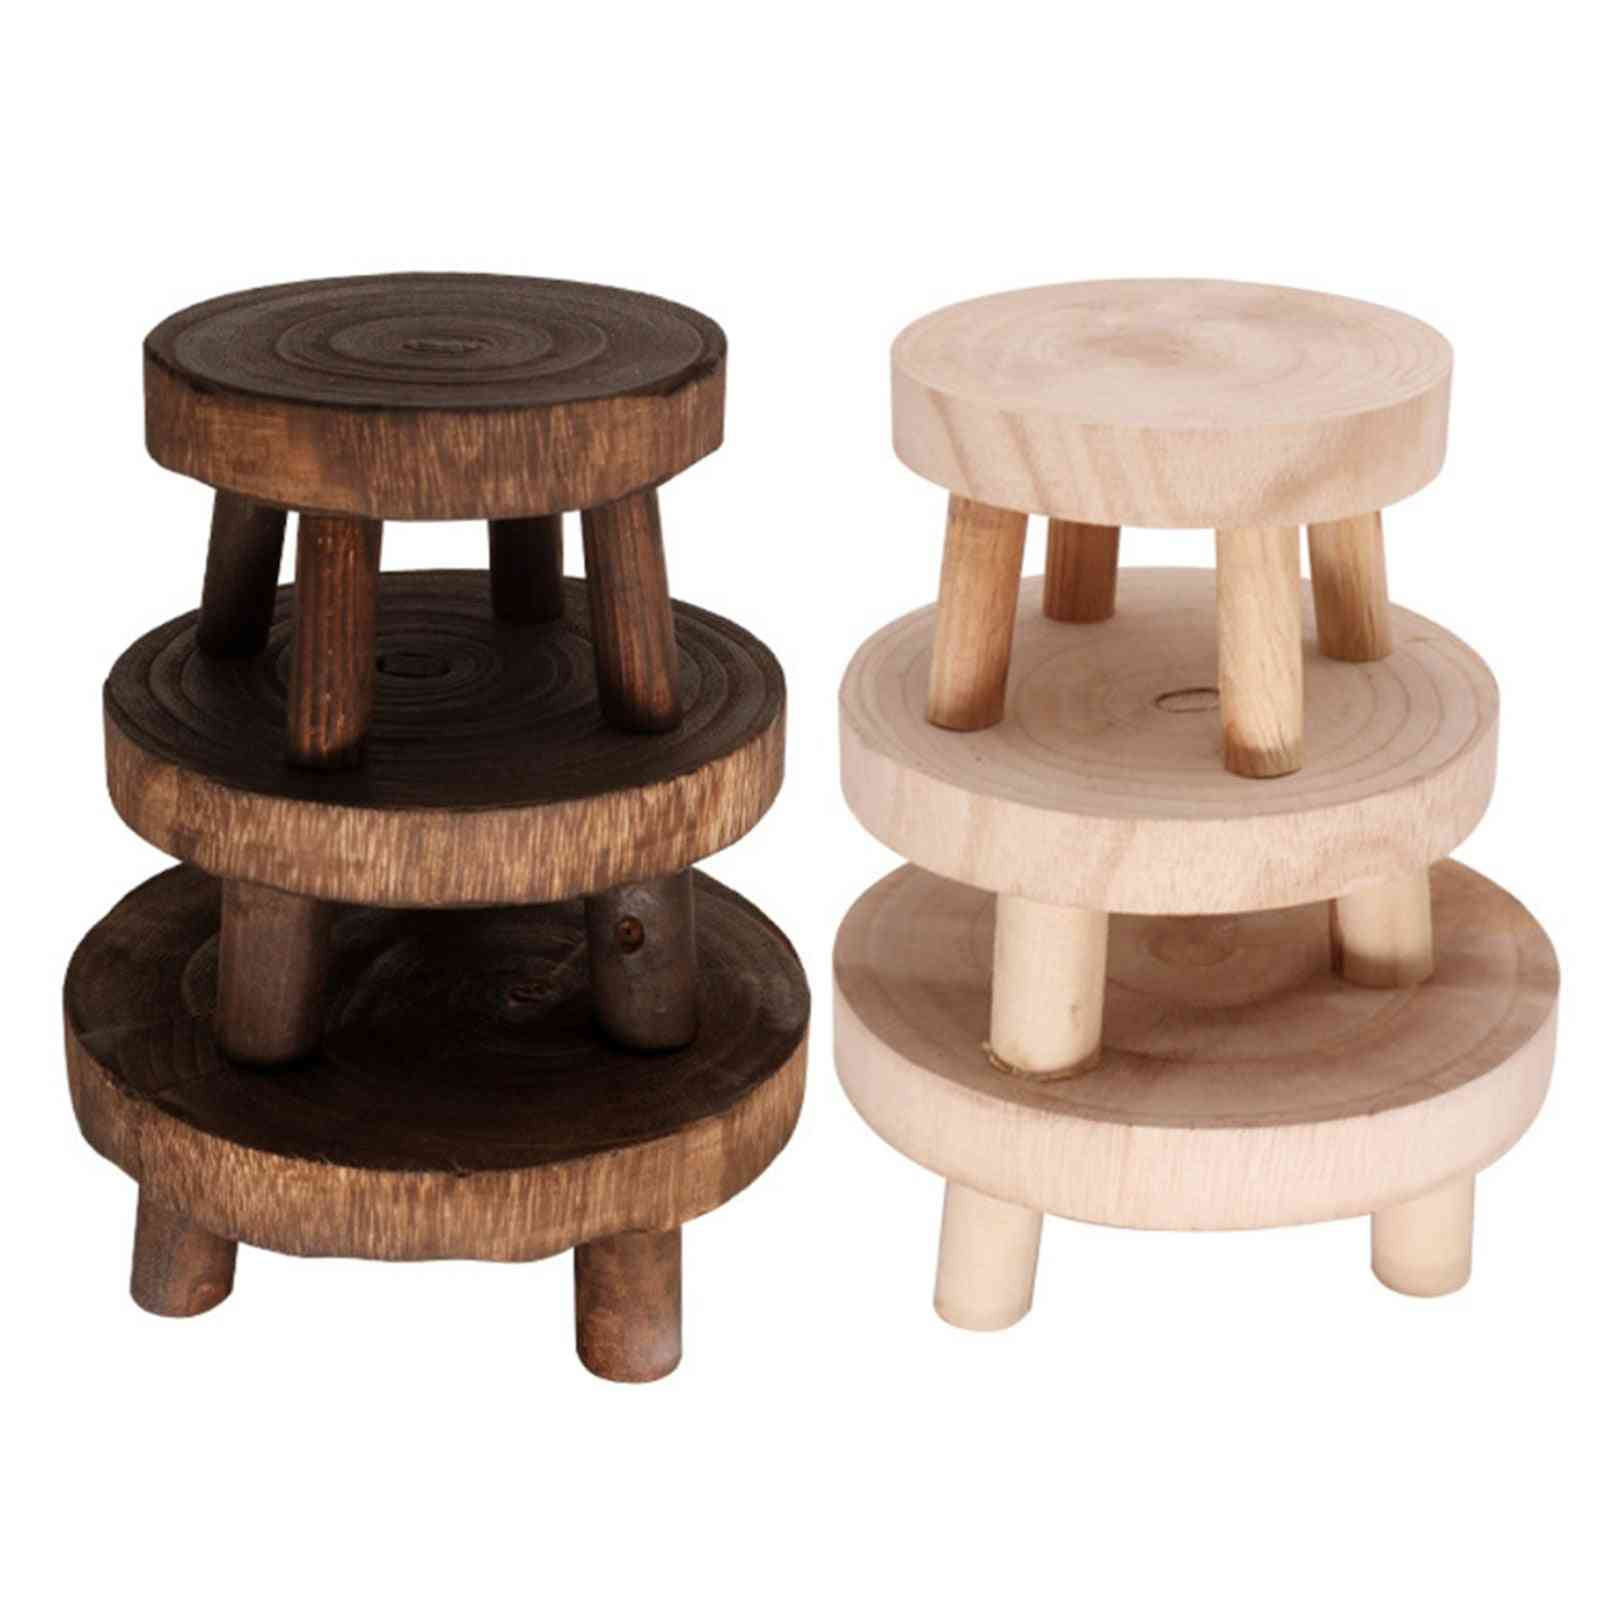 Wooden Flower Pot Stand Small Bench Footstool Art Plant Planter Display Holder